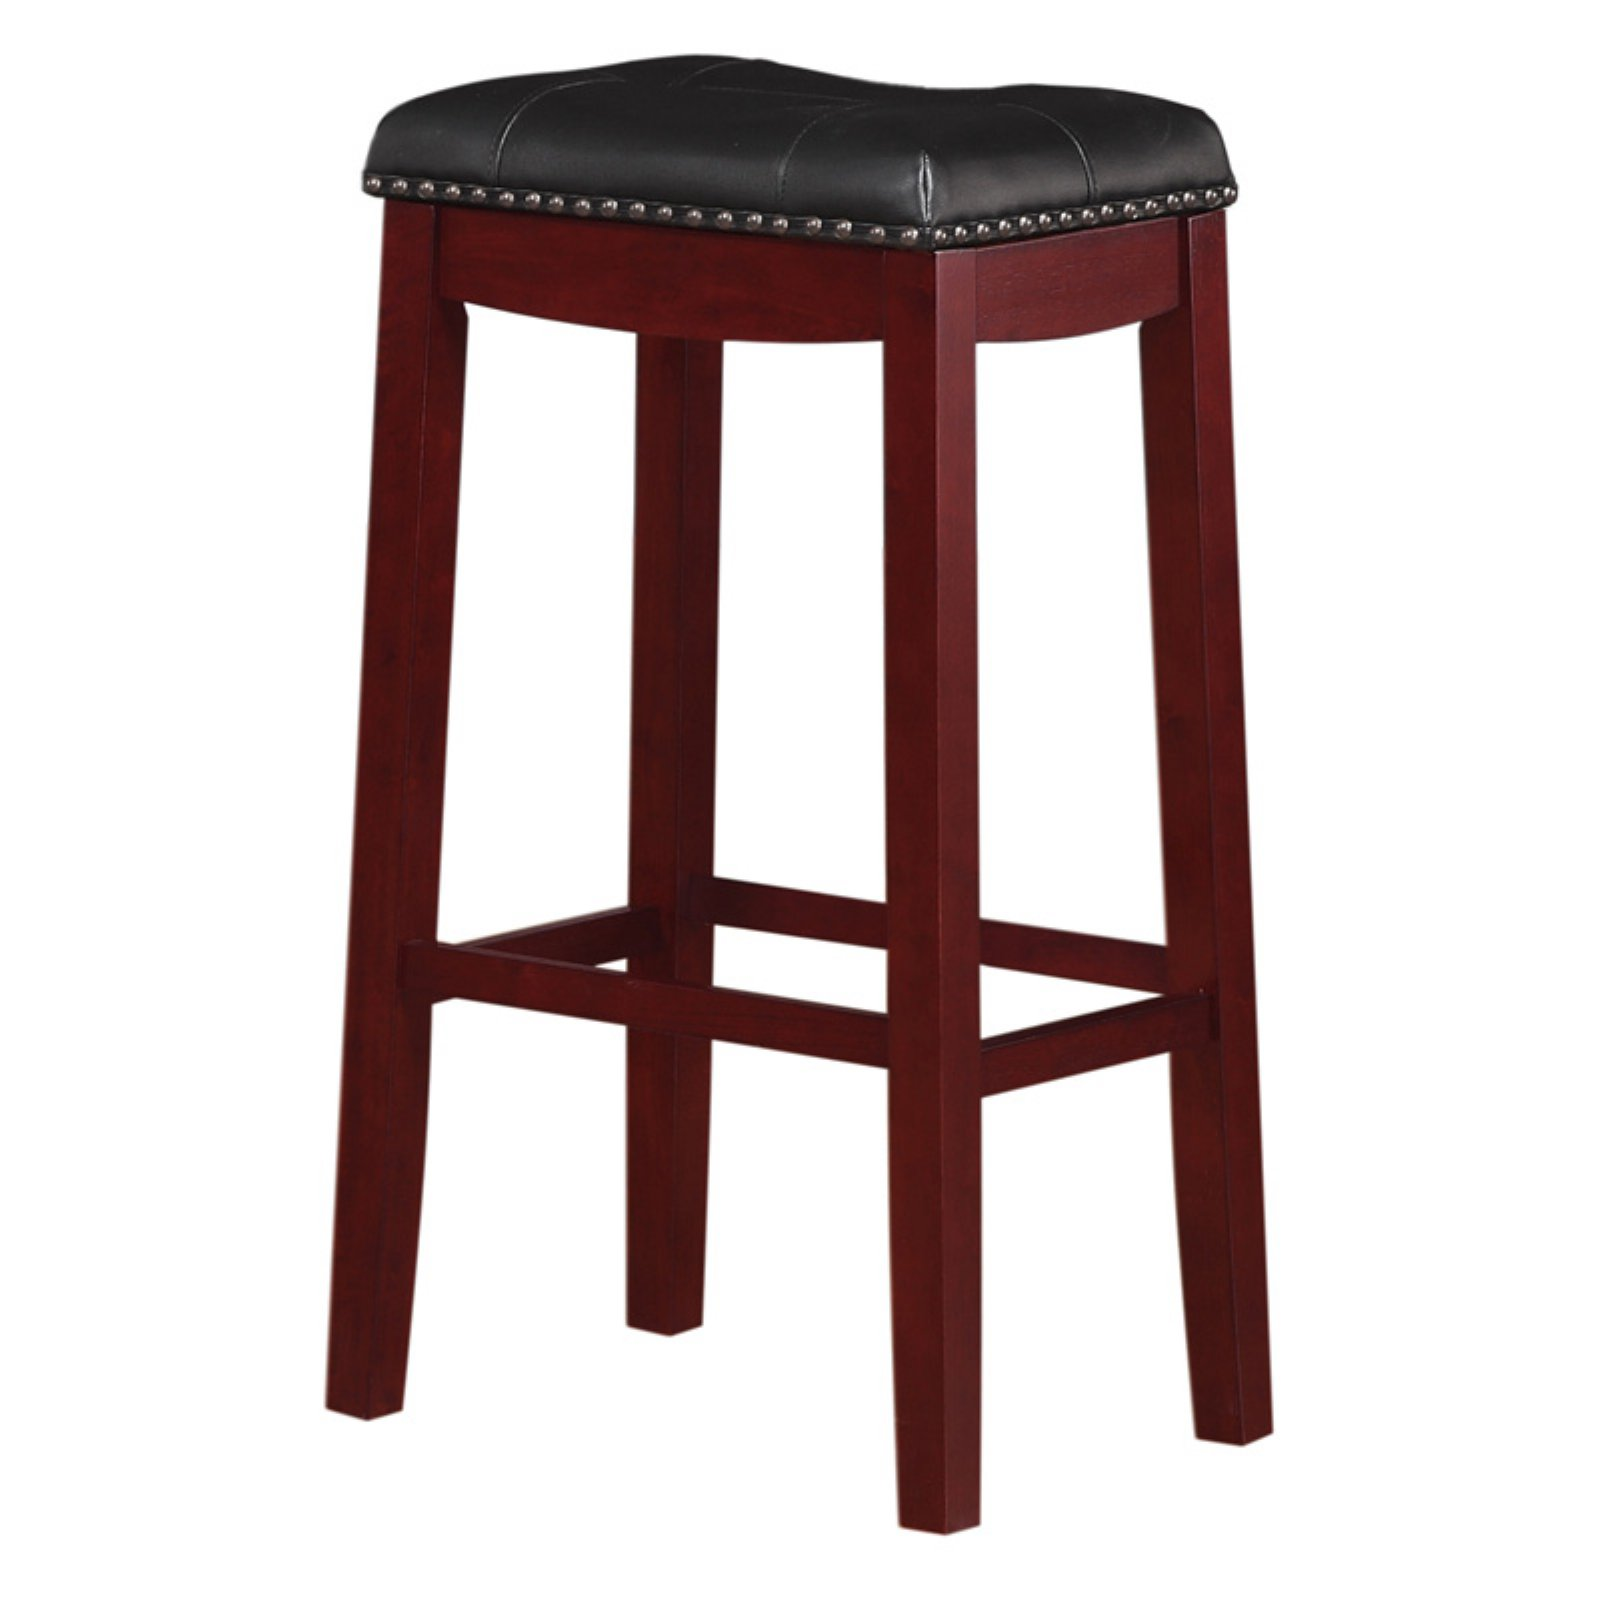 "Angel Line Cambridge 29"" Padded Saddle Stool, Cherry w/ Dark Red Cushion"